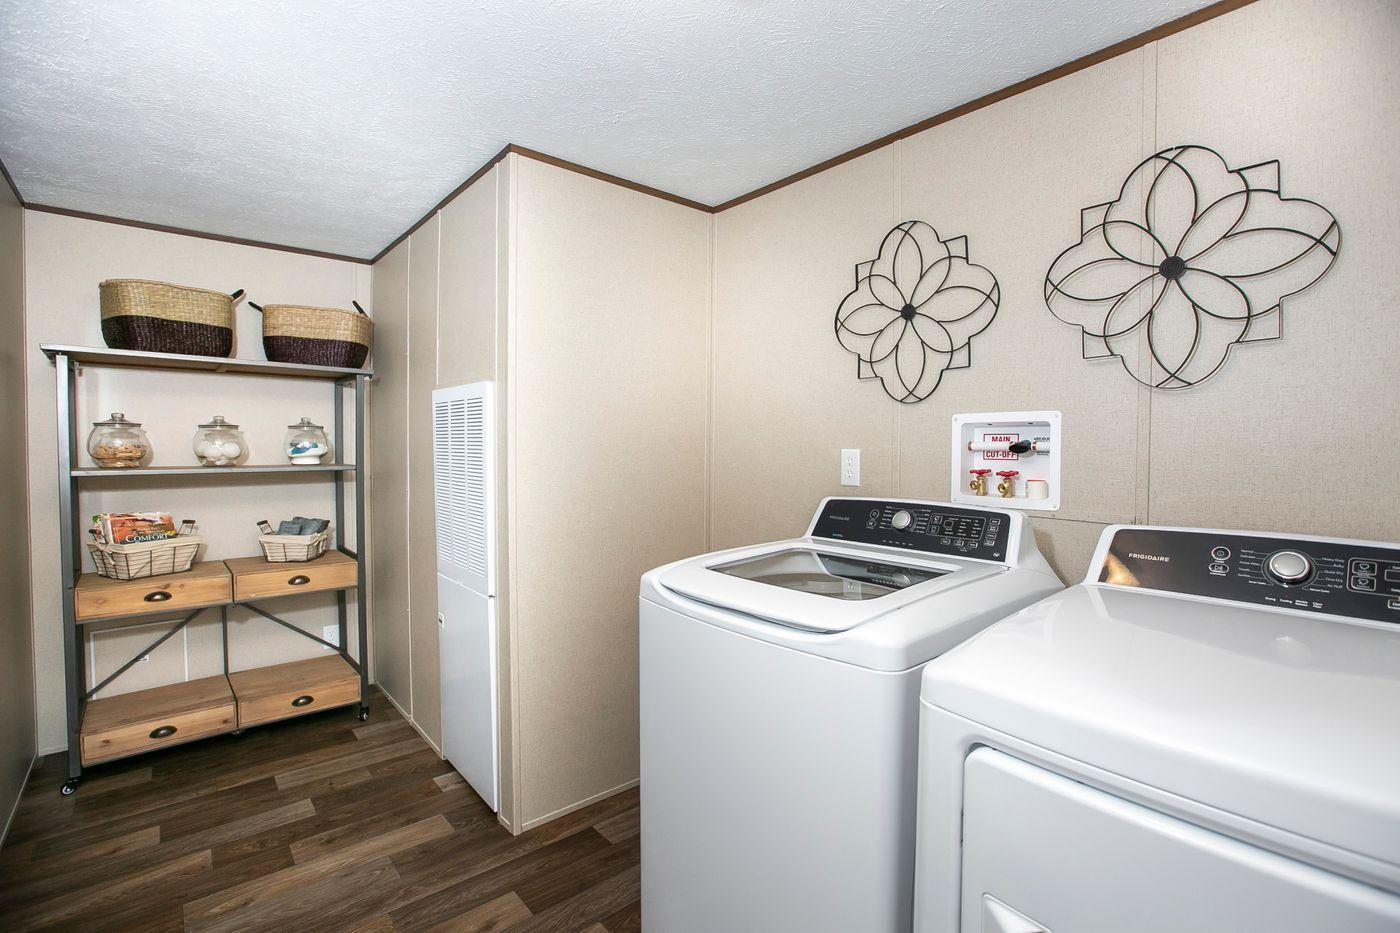 Triumph Laundry Room